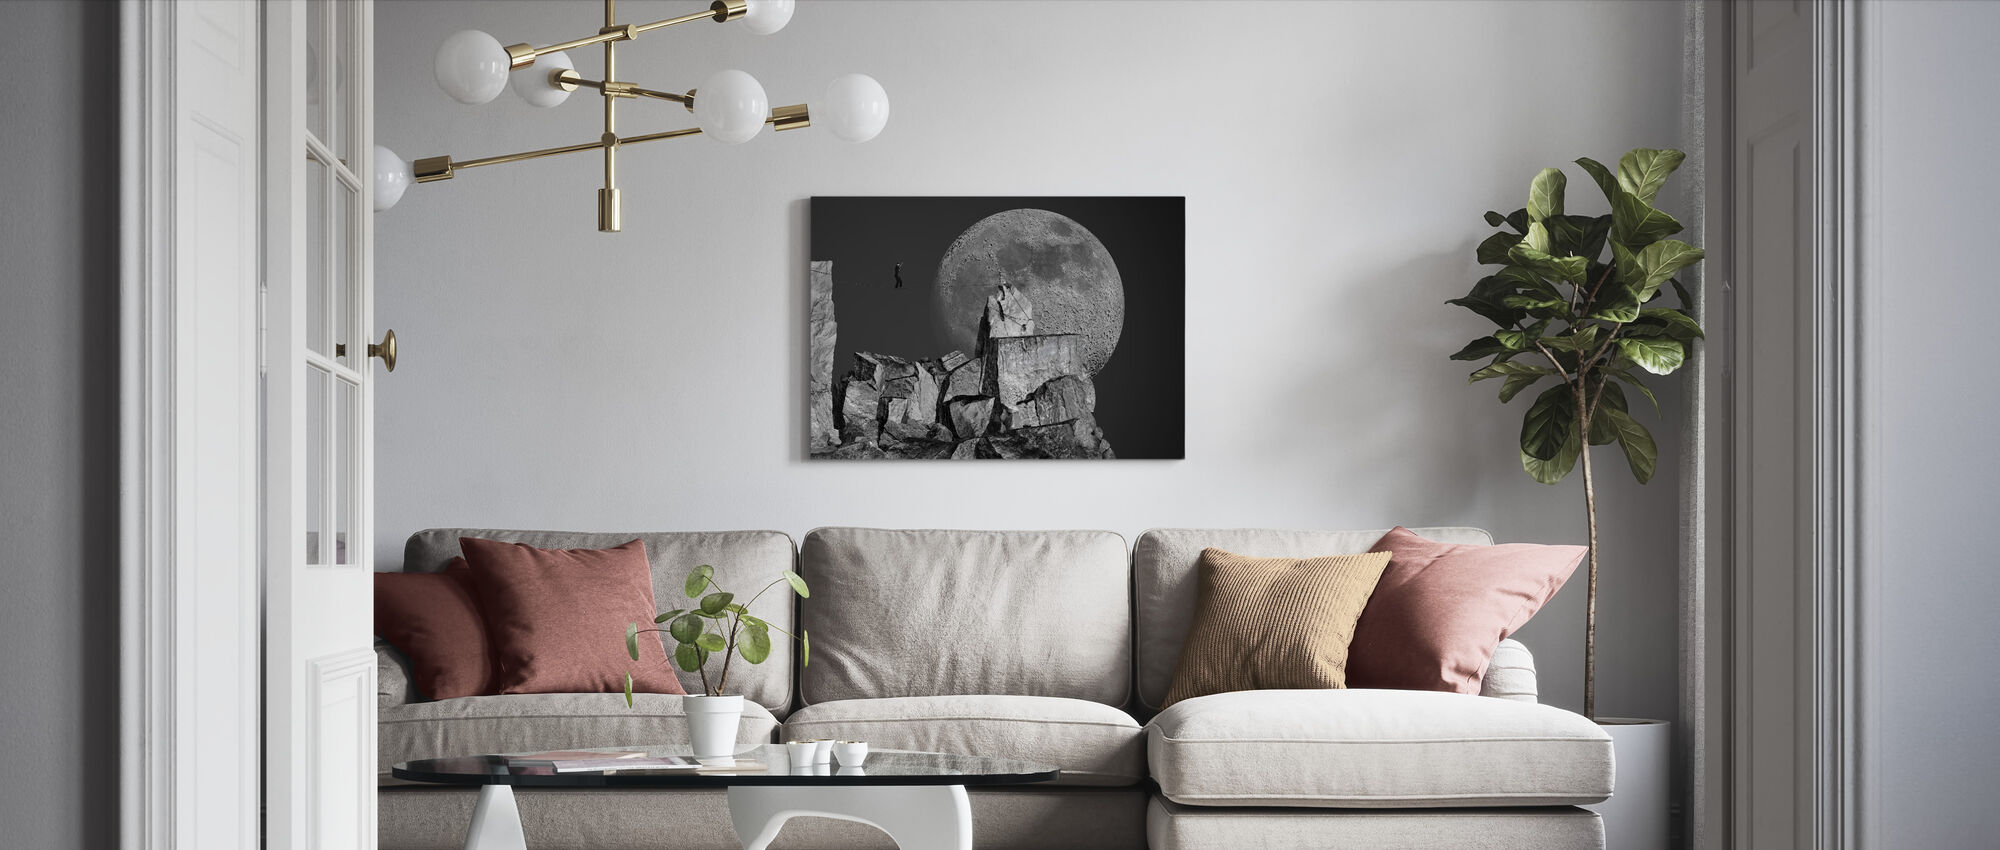 Moonwalk - Canvas print - Living Room